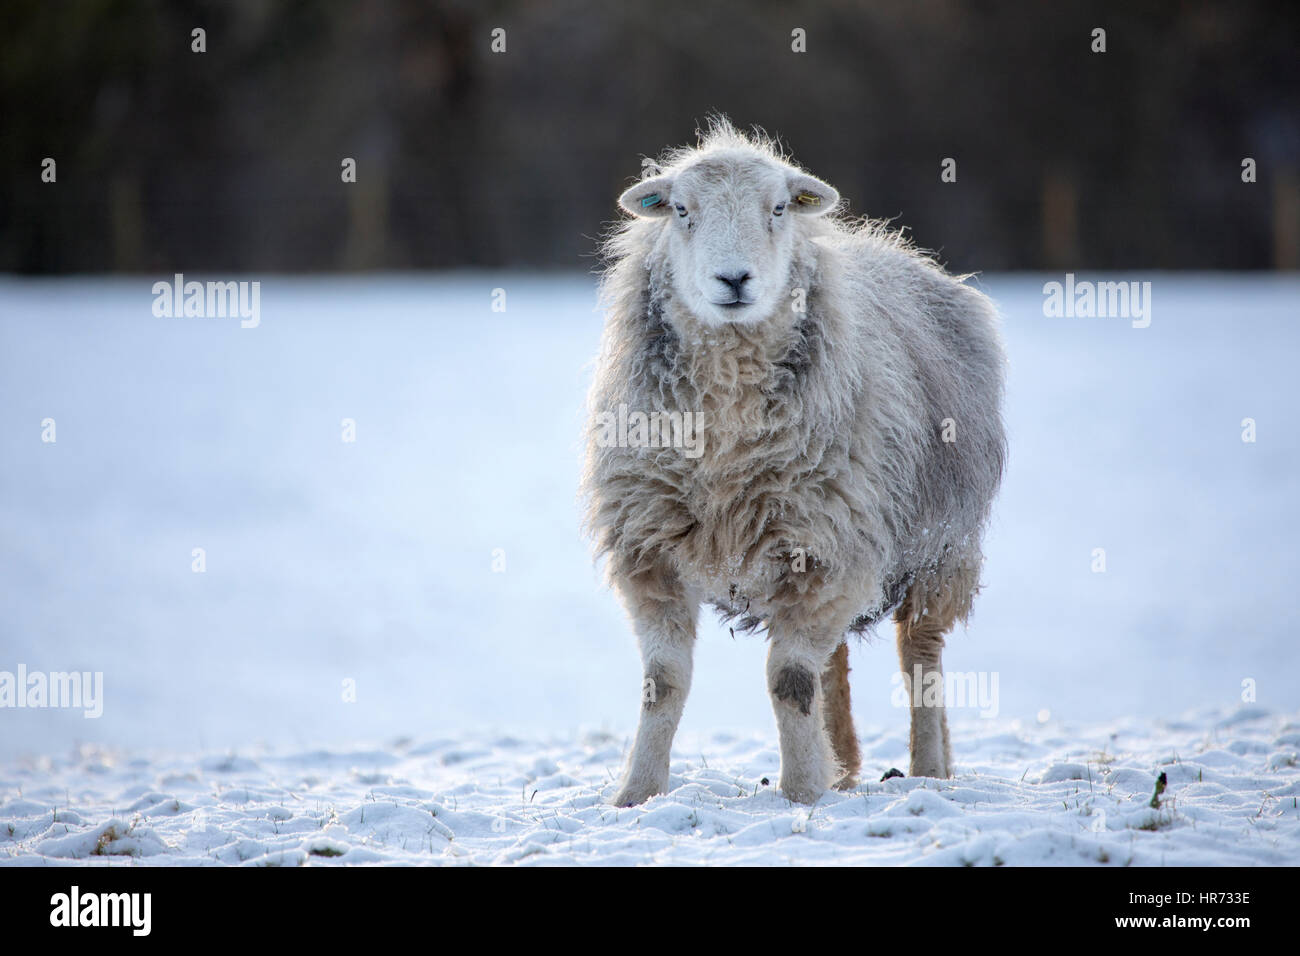 Hardy Herdwick Sheep braving the freezing snow conditions in the rural village of Nannerch located in Flintshire, - Stock Image